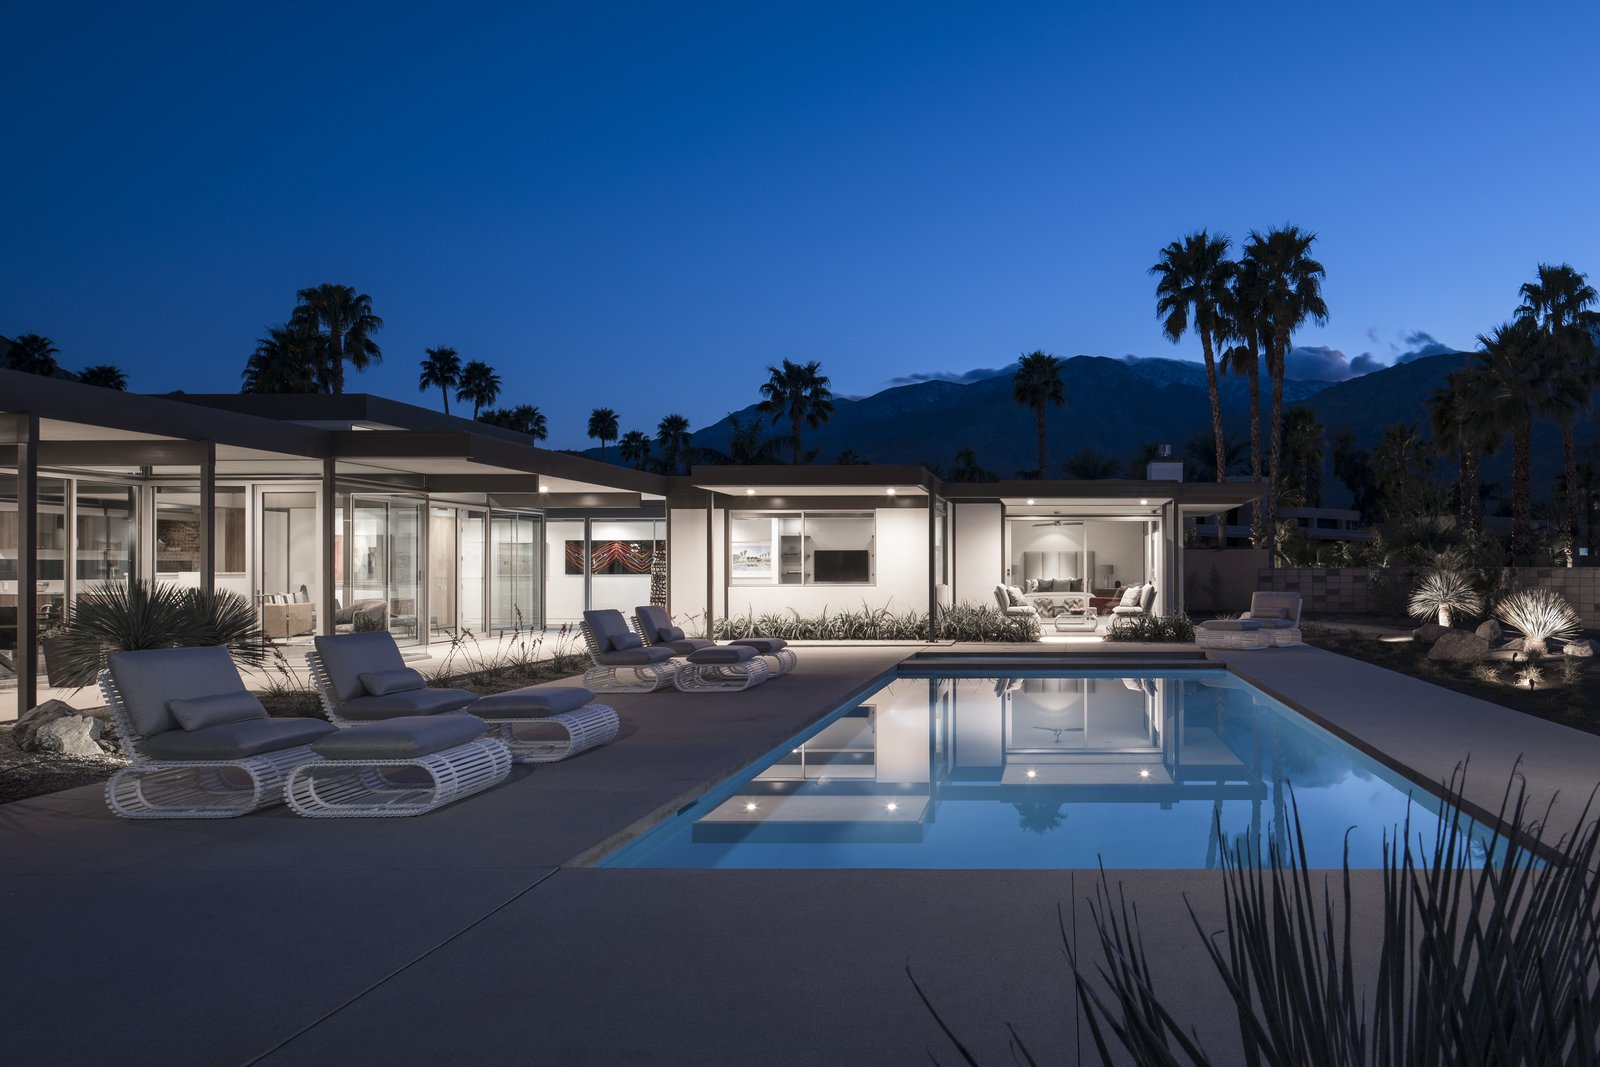 At dusk, the lightly colored home glows like a lantern in the dessert sky.